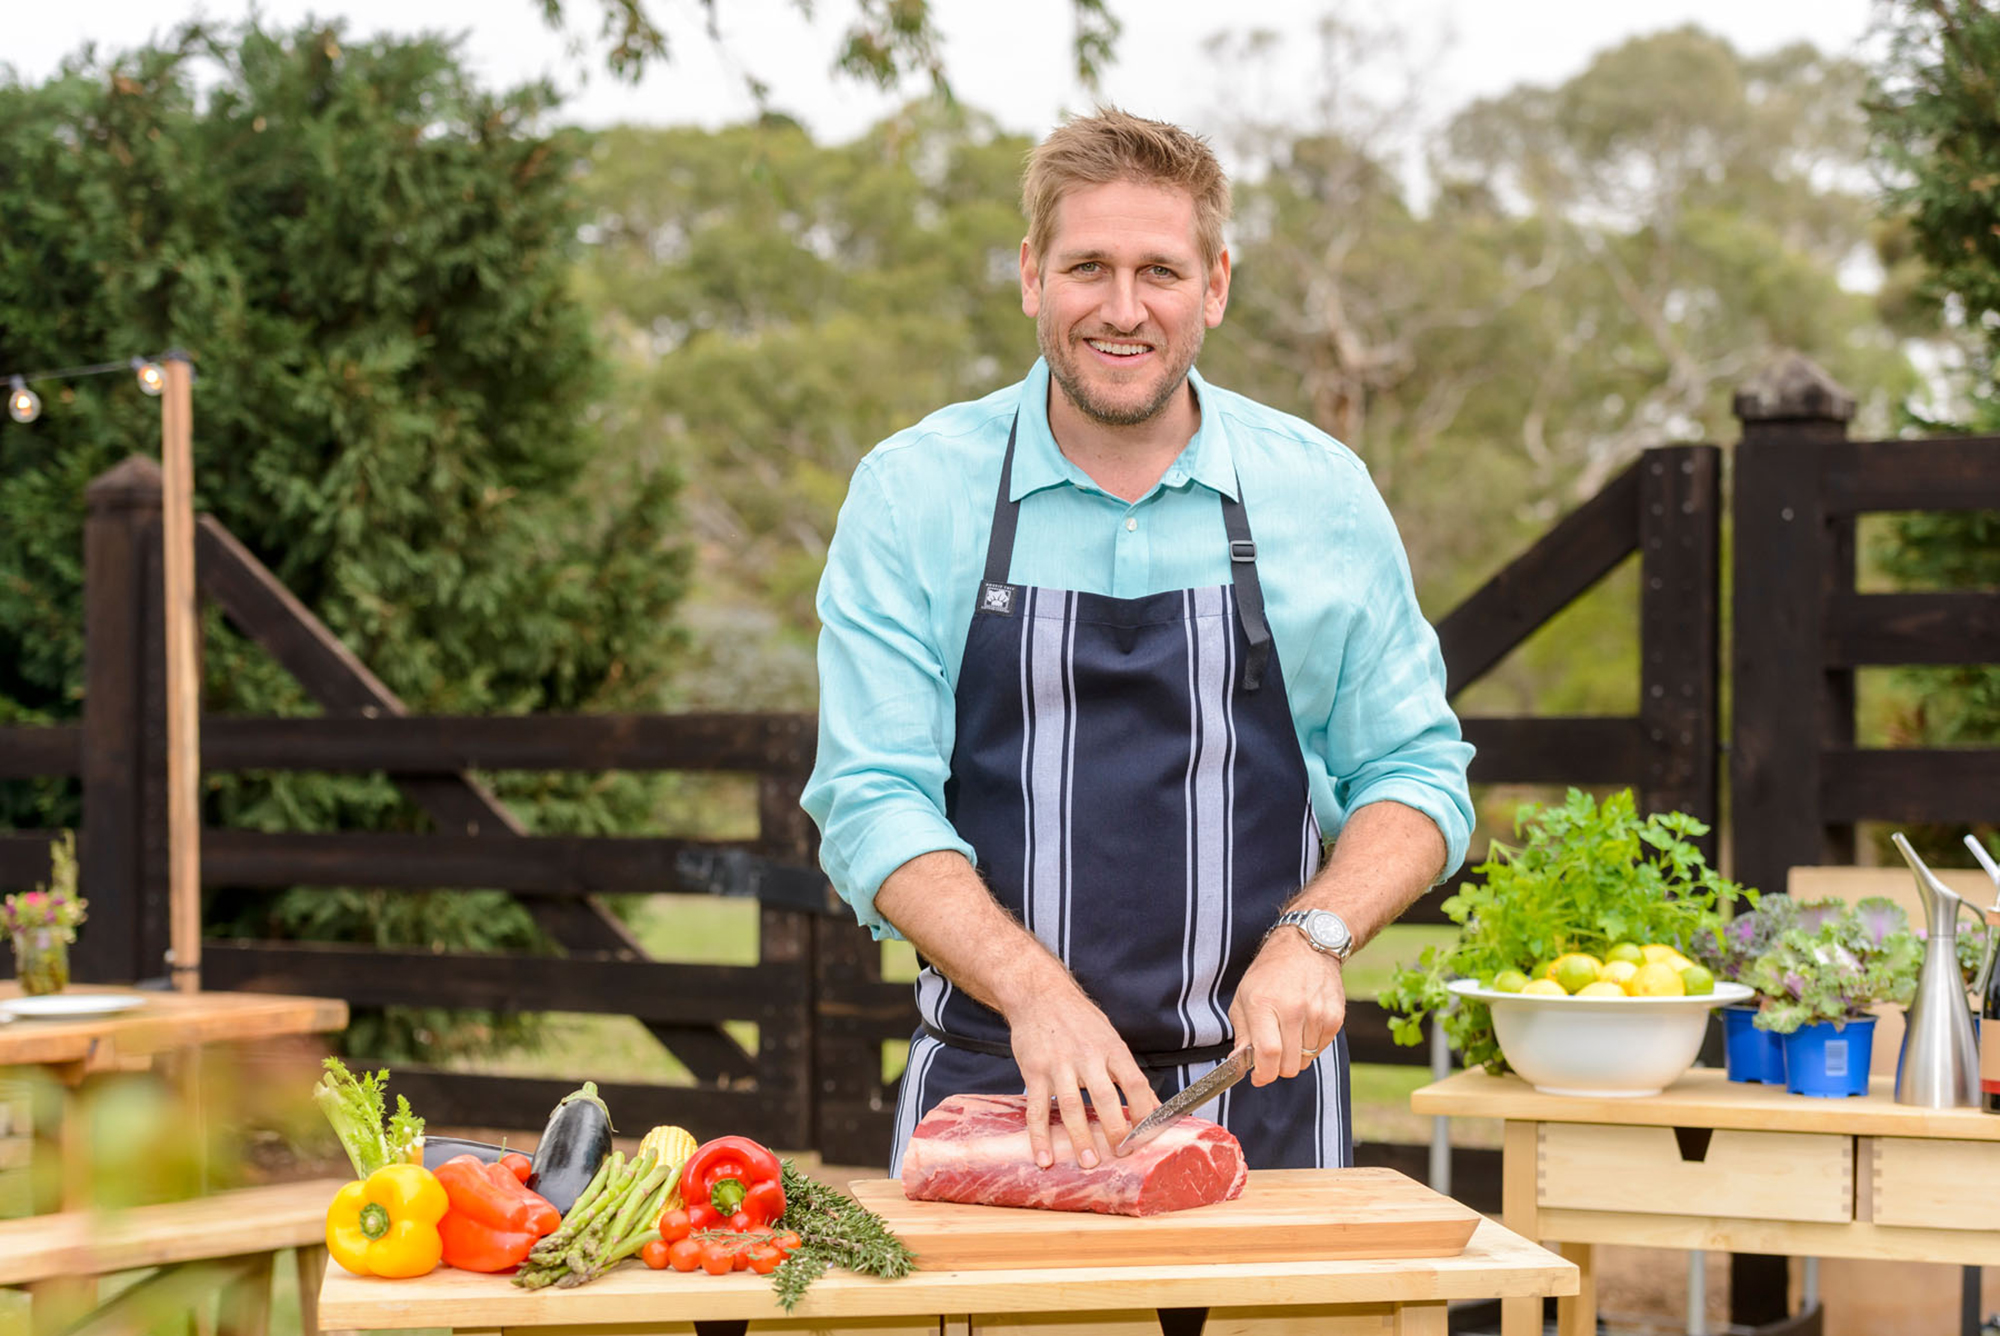 Curtis Stone Shares a Recipe for Grilled Rib-Eye Steaks with Gorgonzola Butter: 'It's Pretty Special' - Curtis Stone